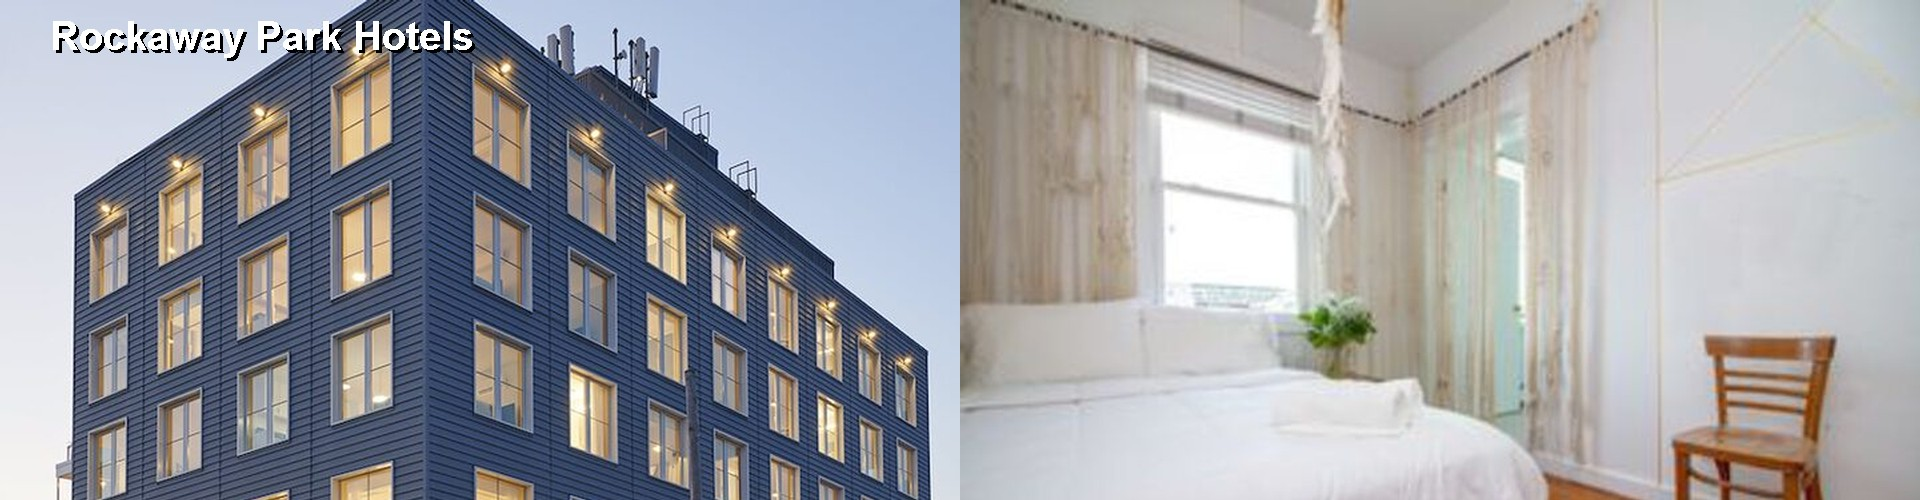 5 Best Hotels near Rockaway Park